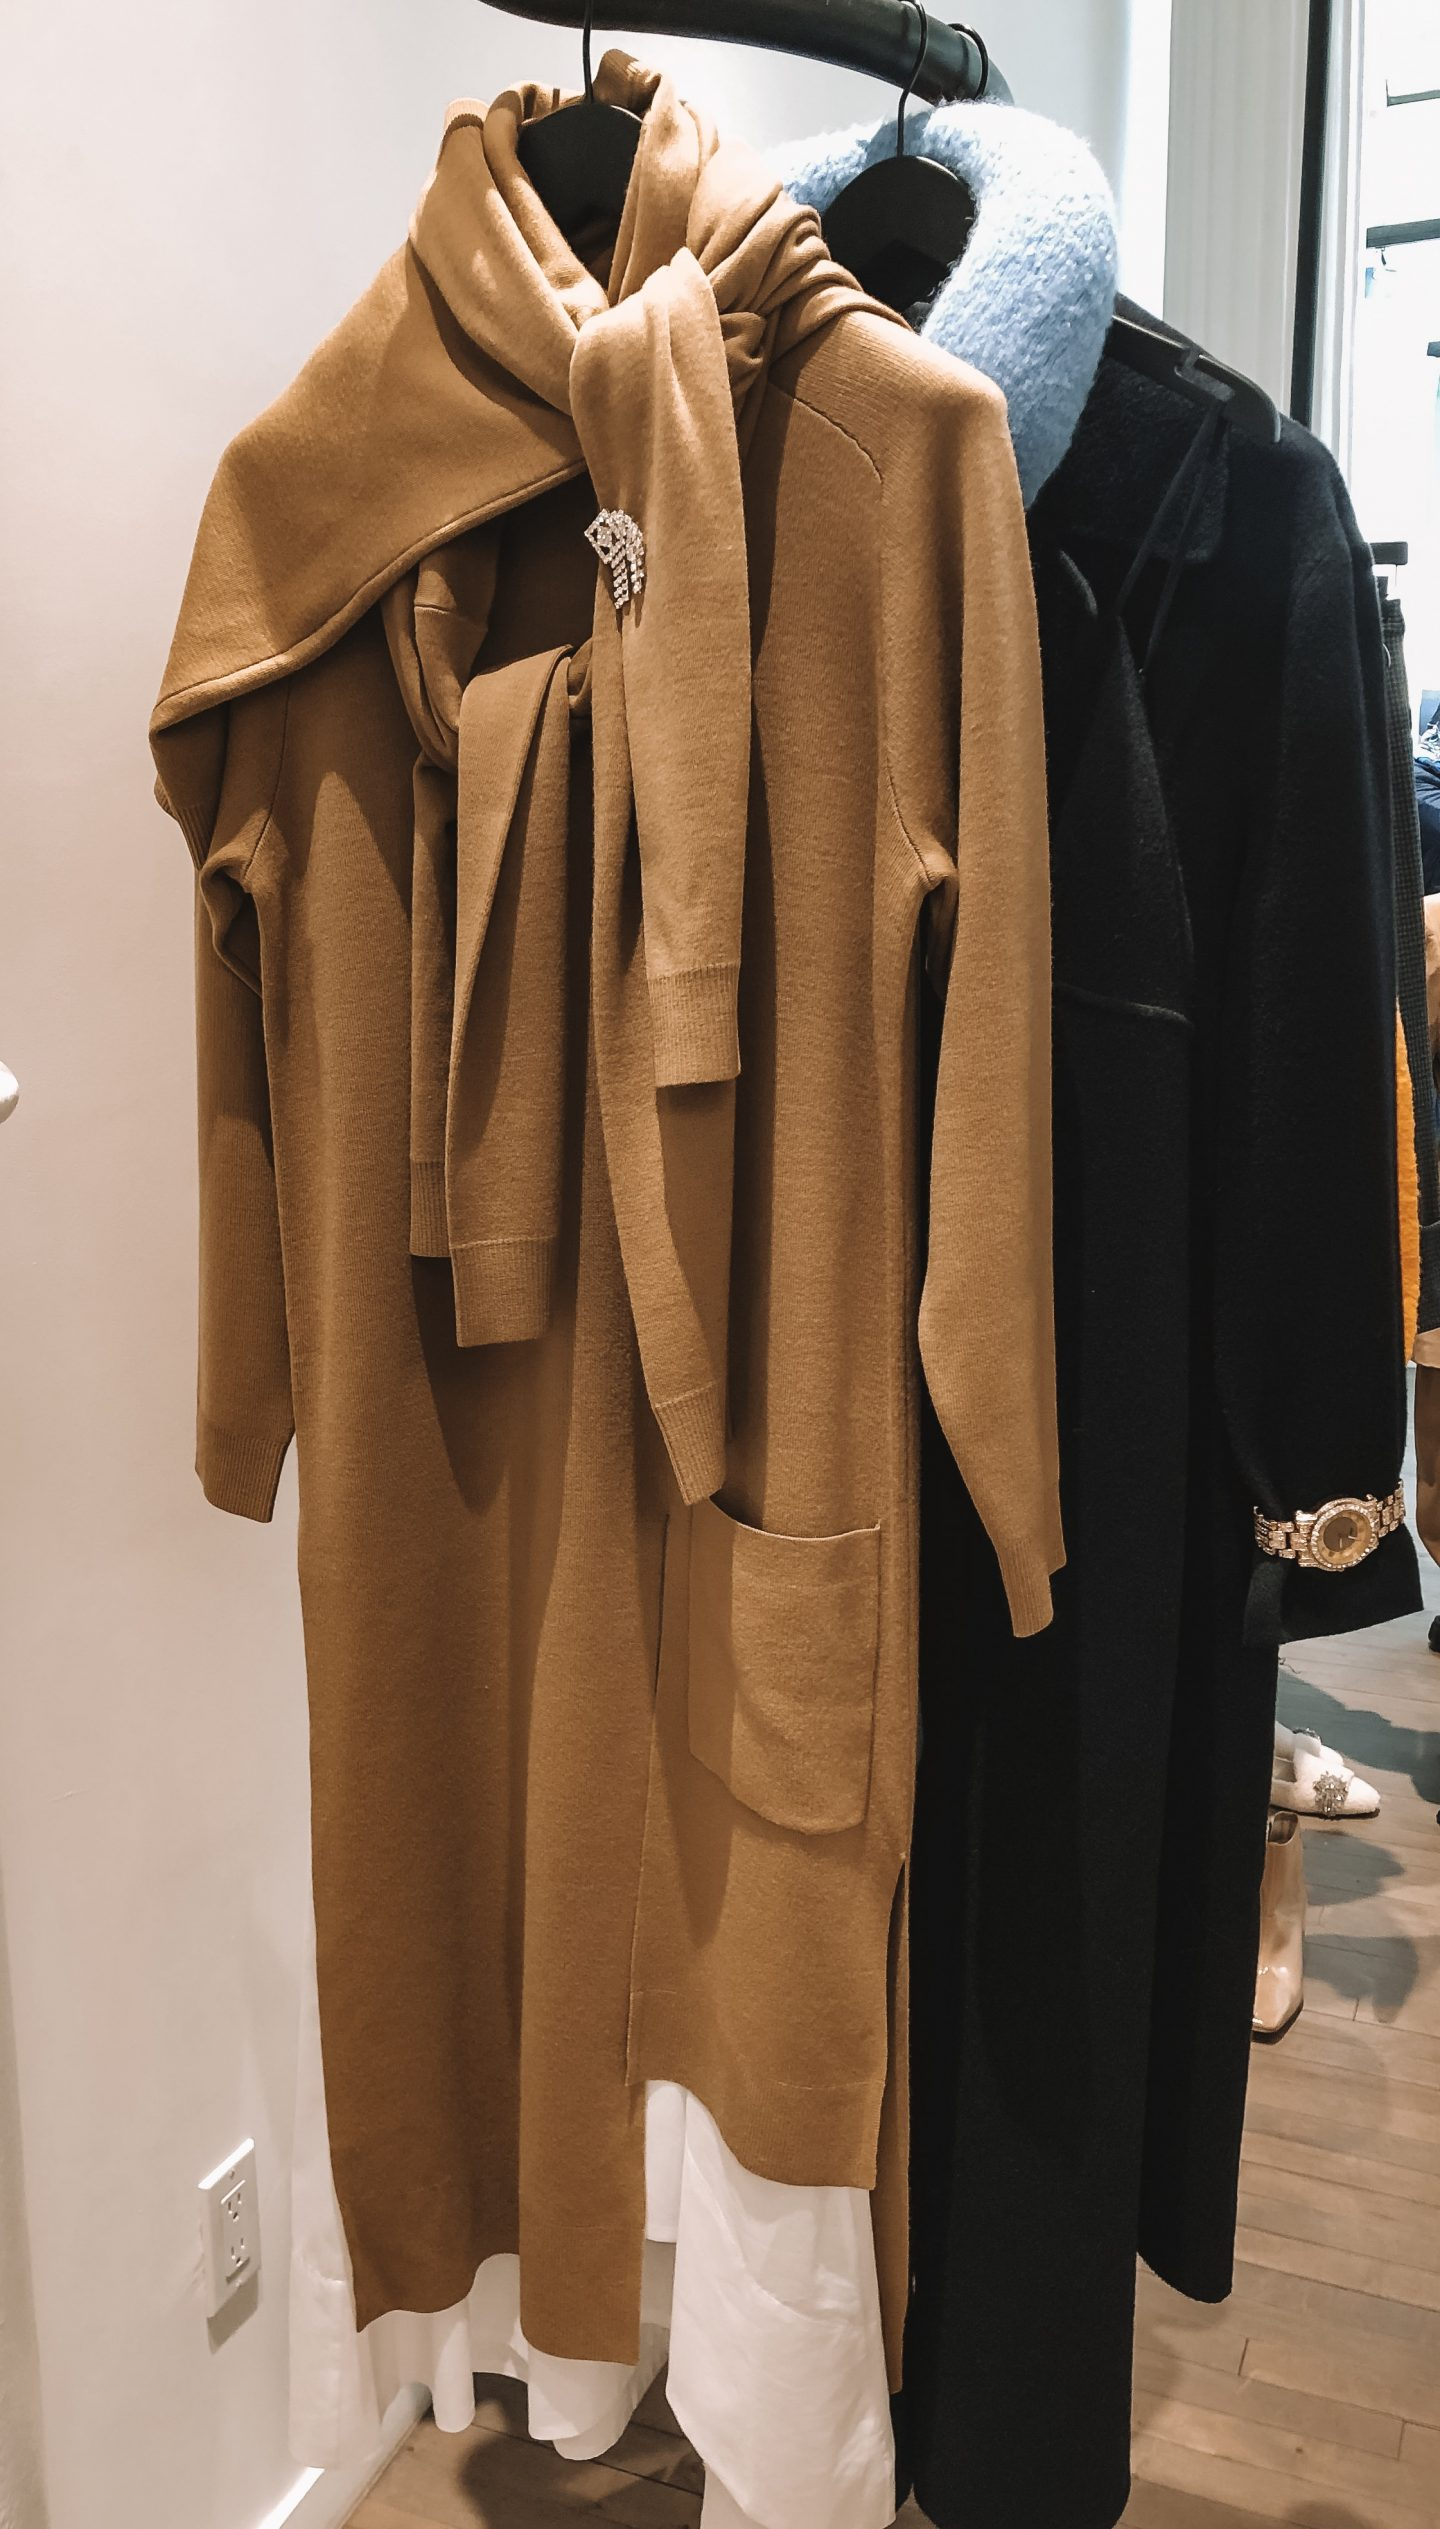 tibi fall winter 20 coats